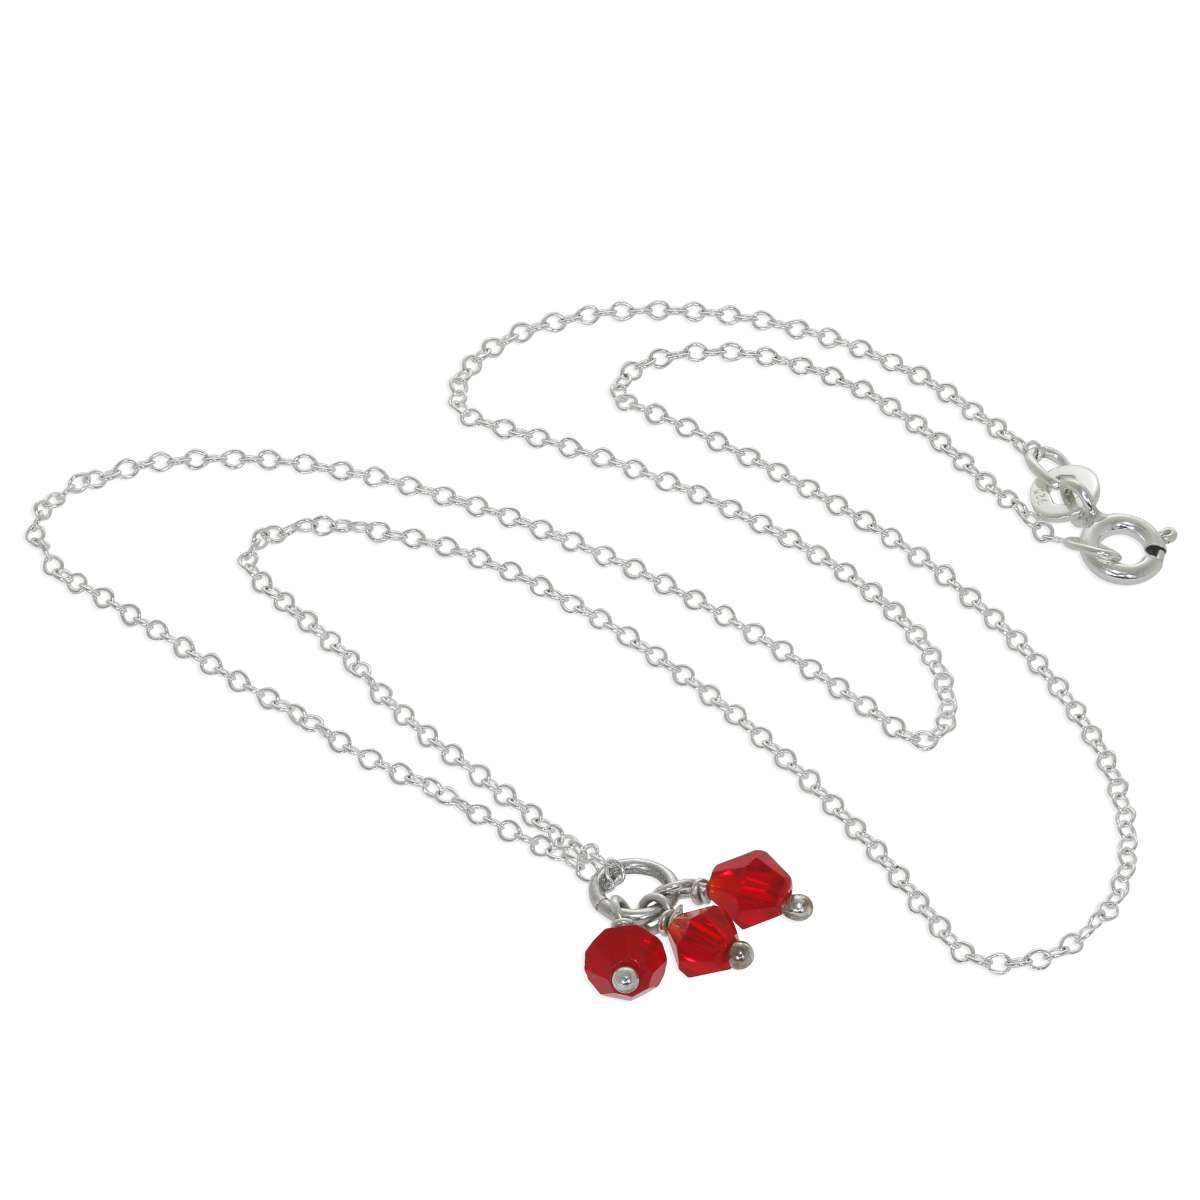 Alterative image for Triple Sterling Silver Red CZ Bead Necklace - 14 - 22 Inches